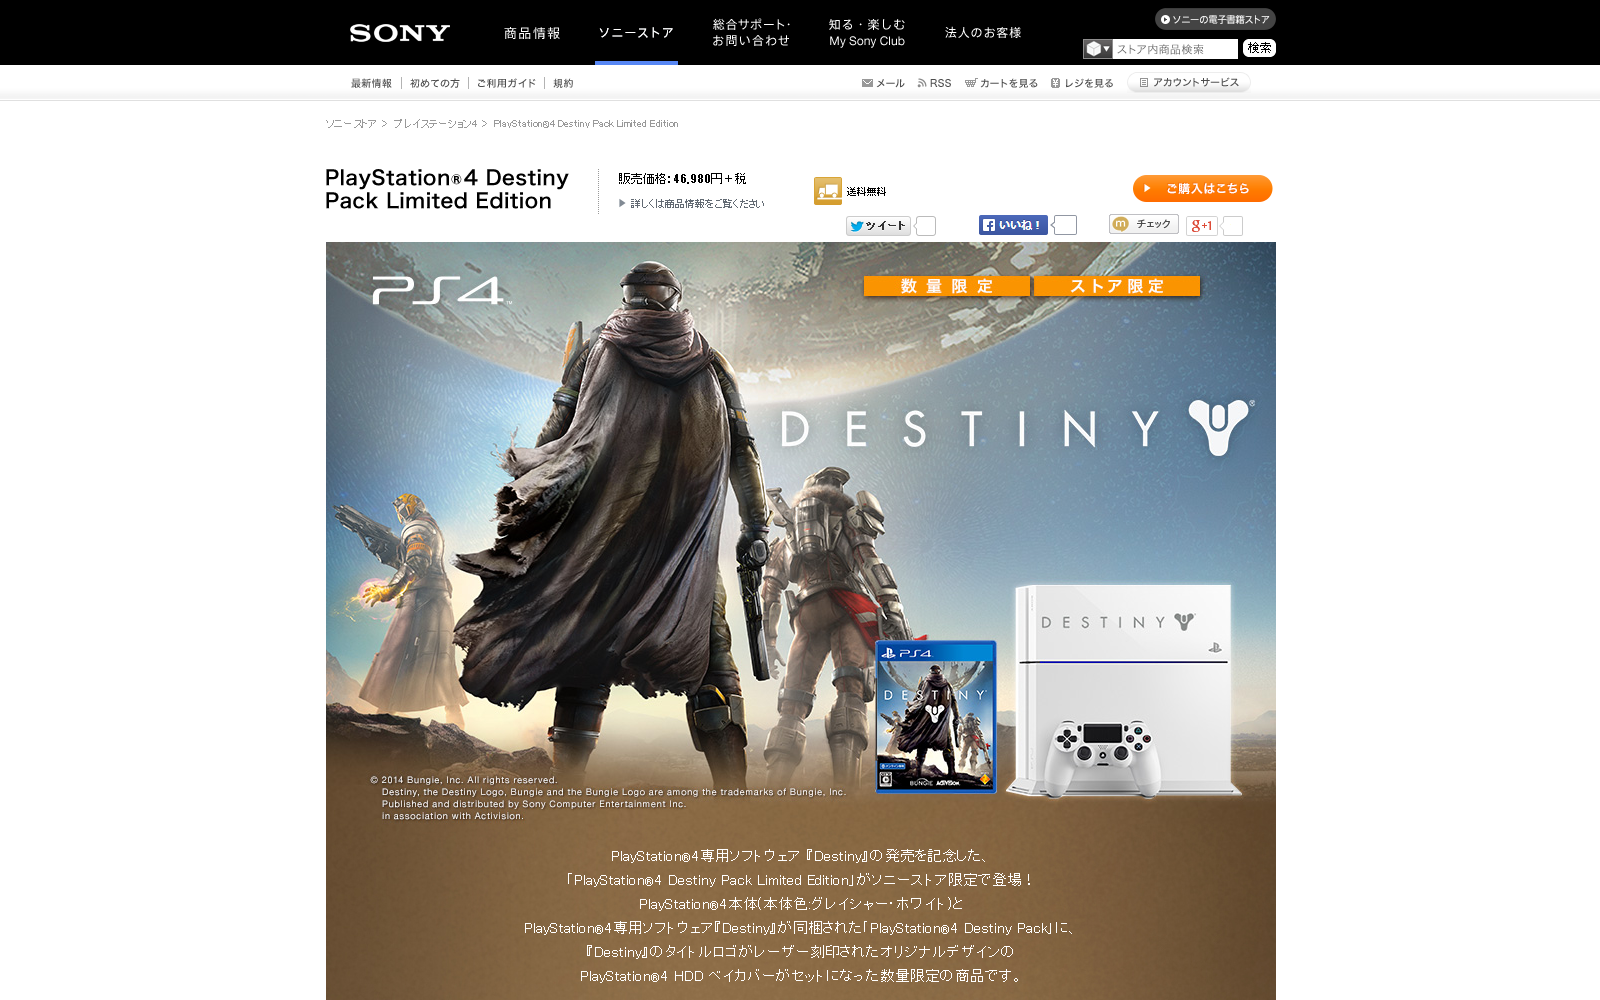 PlayStation 4 Destiny Pack Limited Edition|ソニーの公式通販サイト ソニーストア(Sony Store)